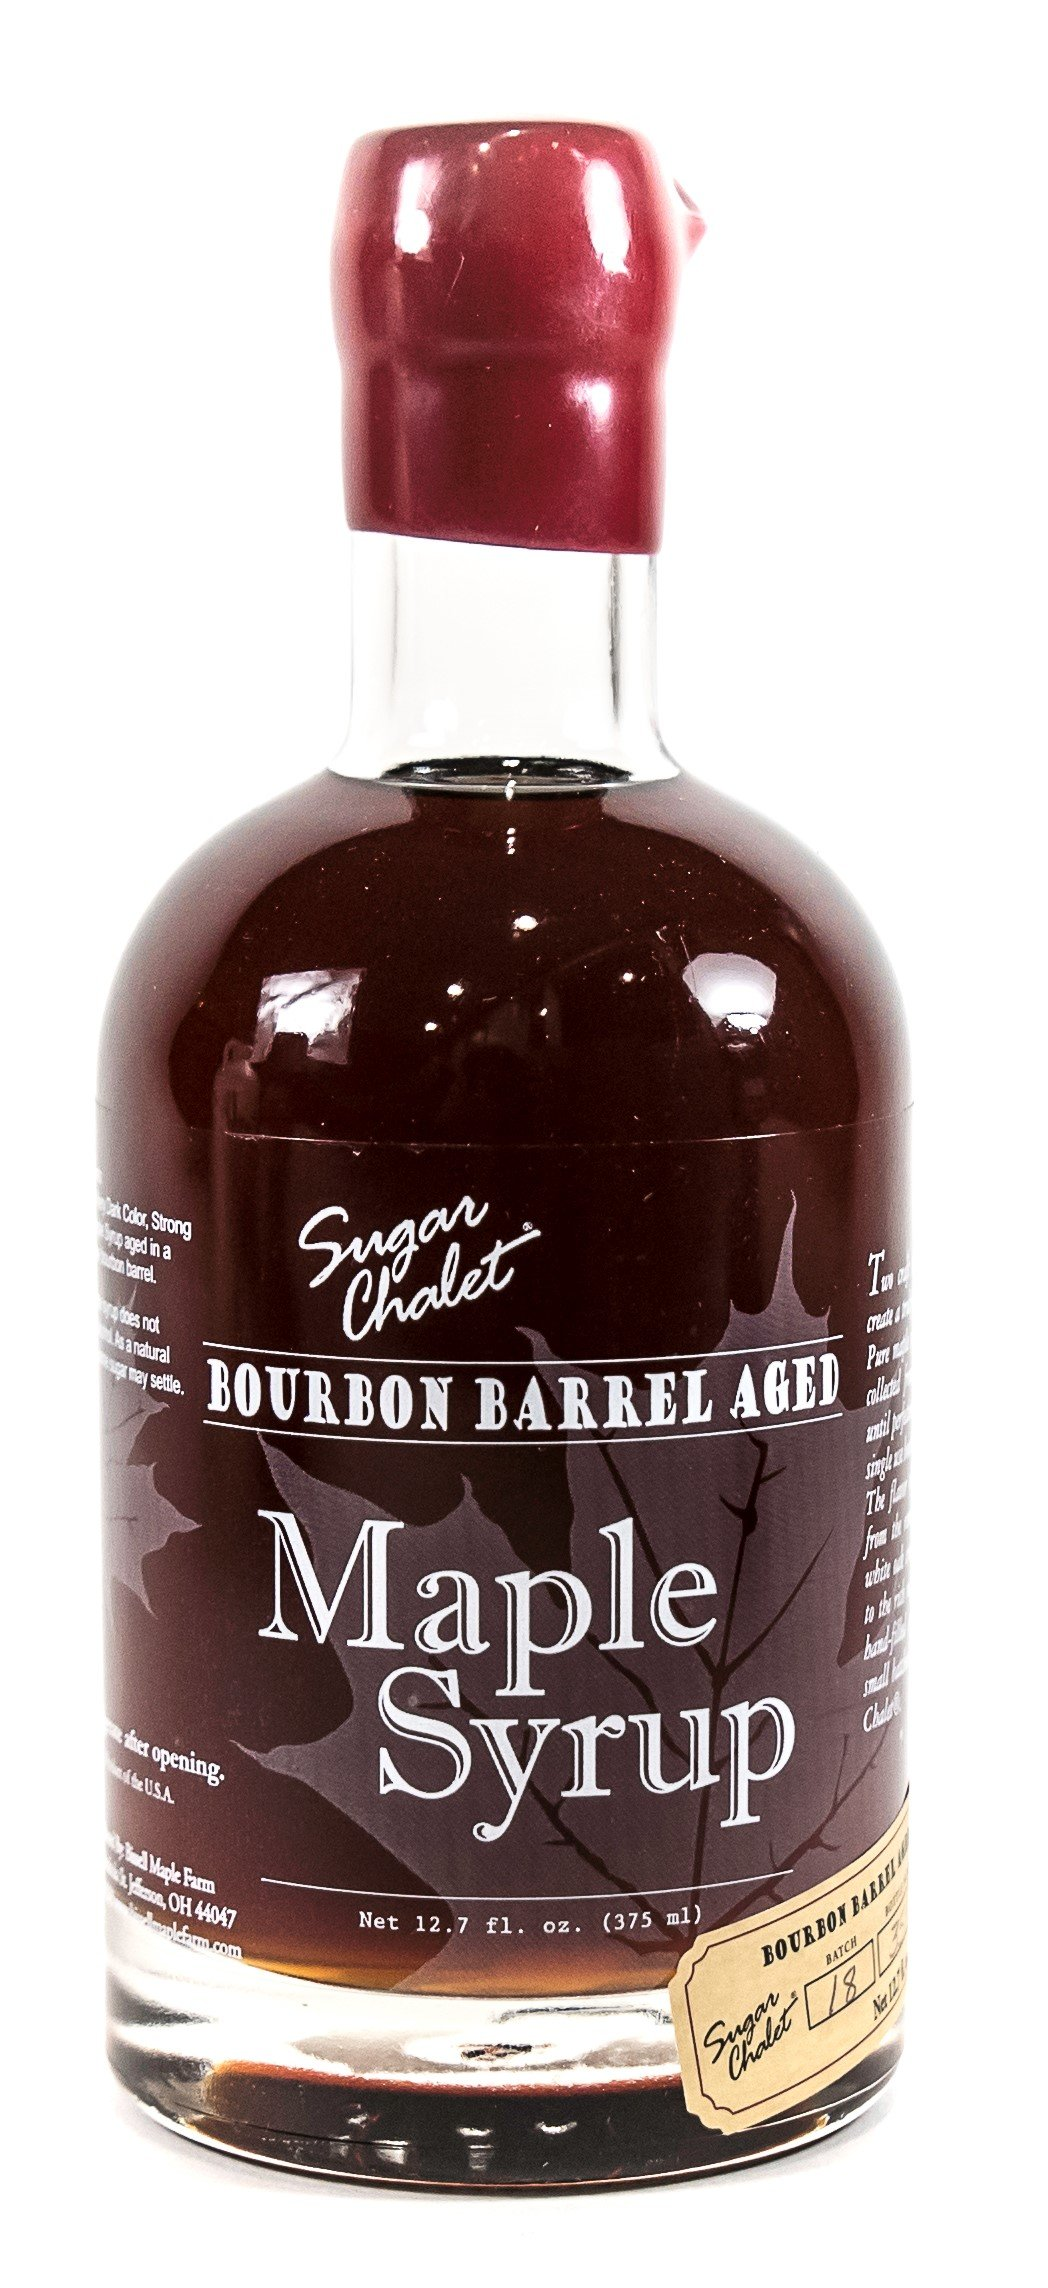 Bissell Maple Farm Grade A Maple Syrup, Bourbon Barrel Aged by Sugar Chalet